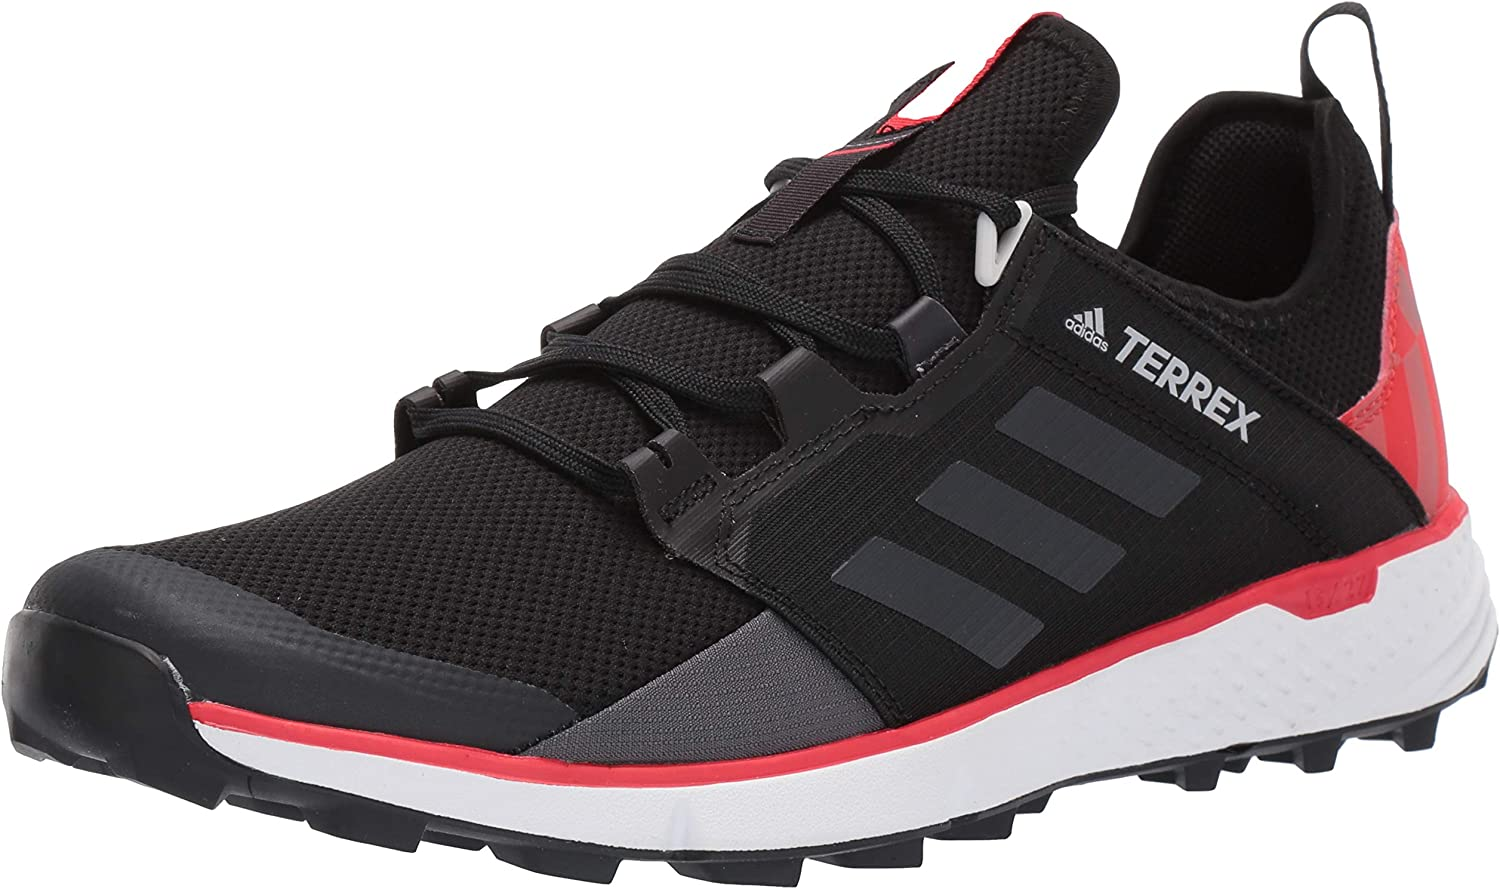 adidas outdoor Men s Terrex Speed Trail Running Shoe